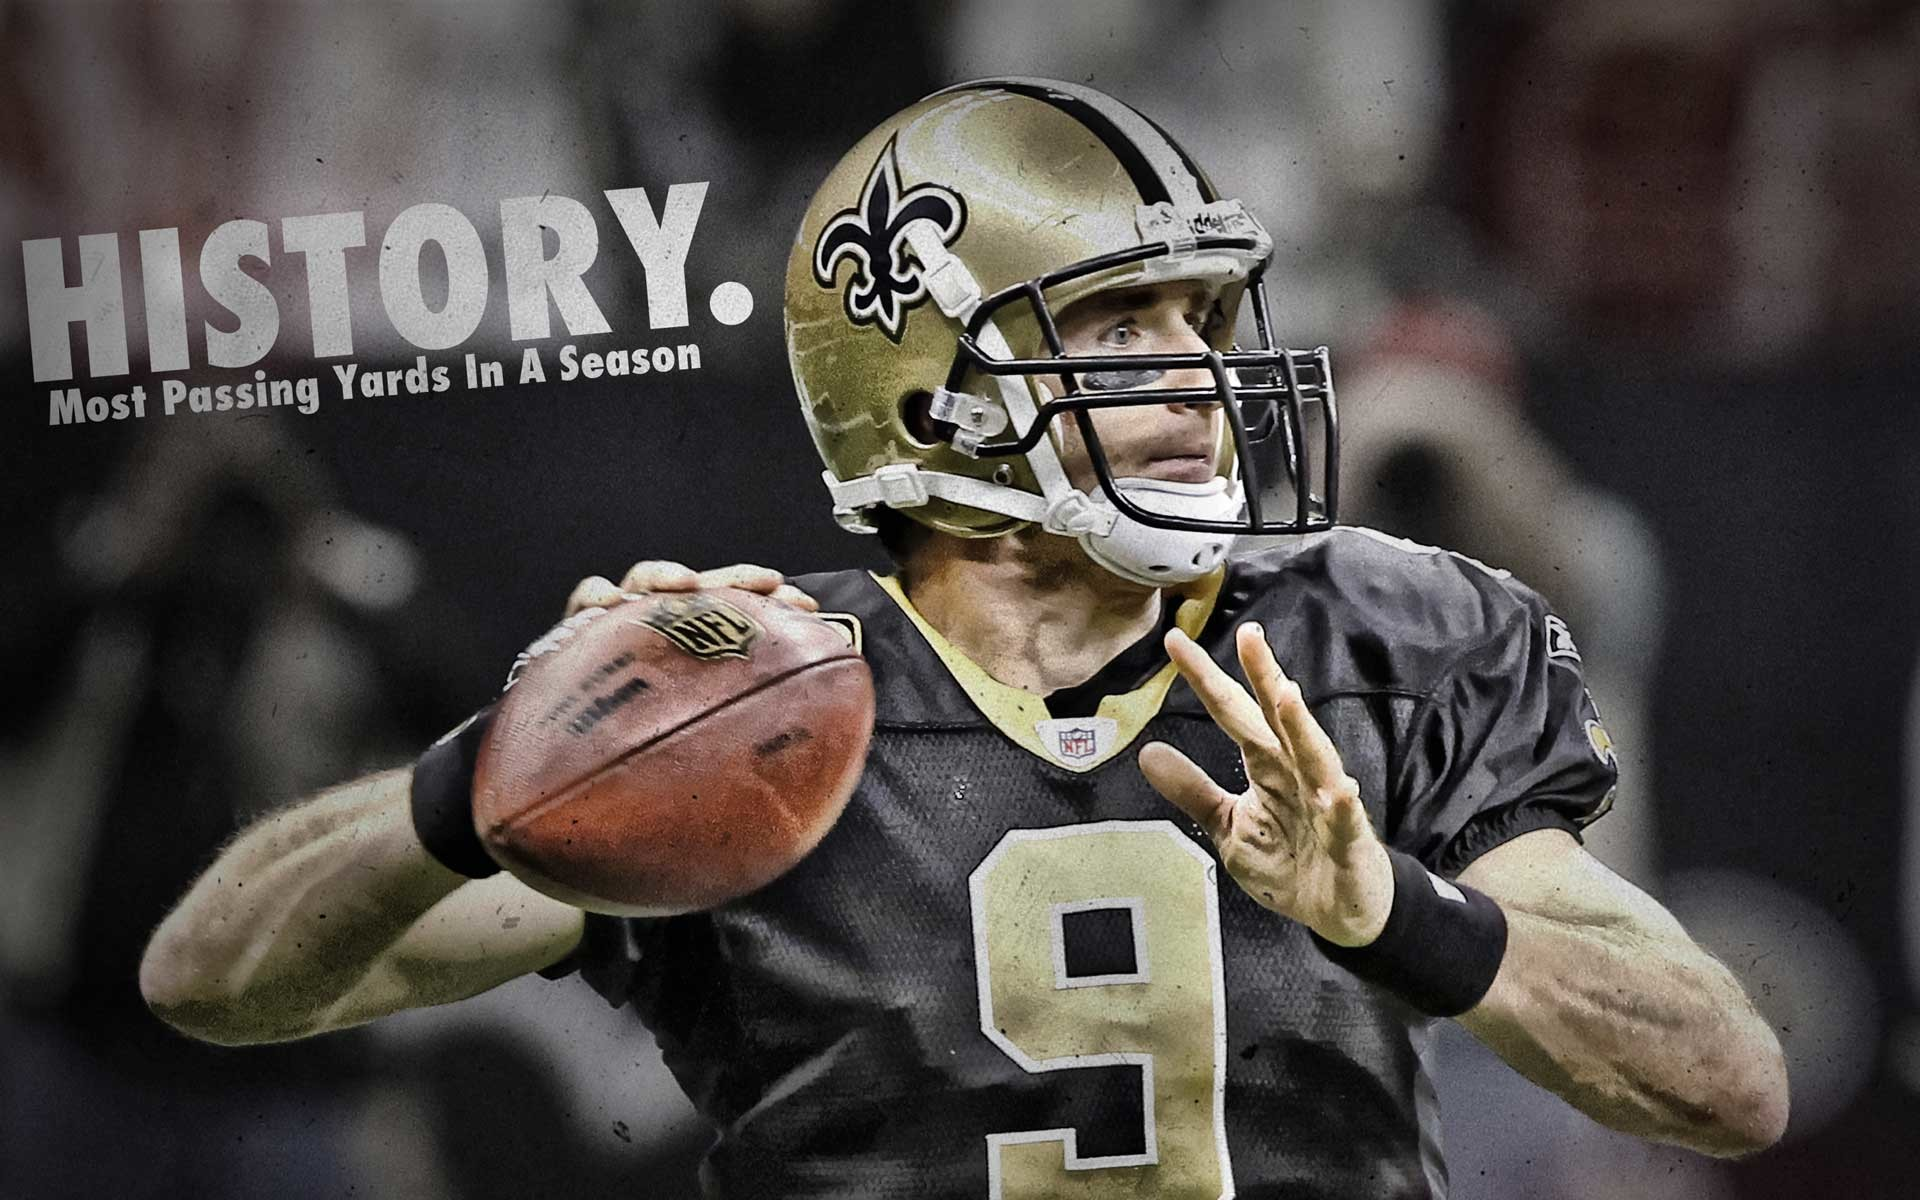 Drew Brees Wallpaper HD 71 images 1920x1200